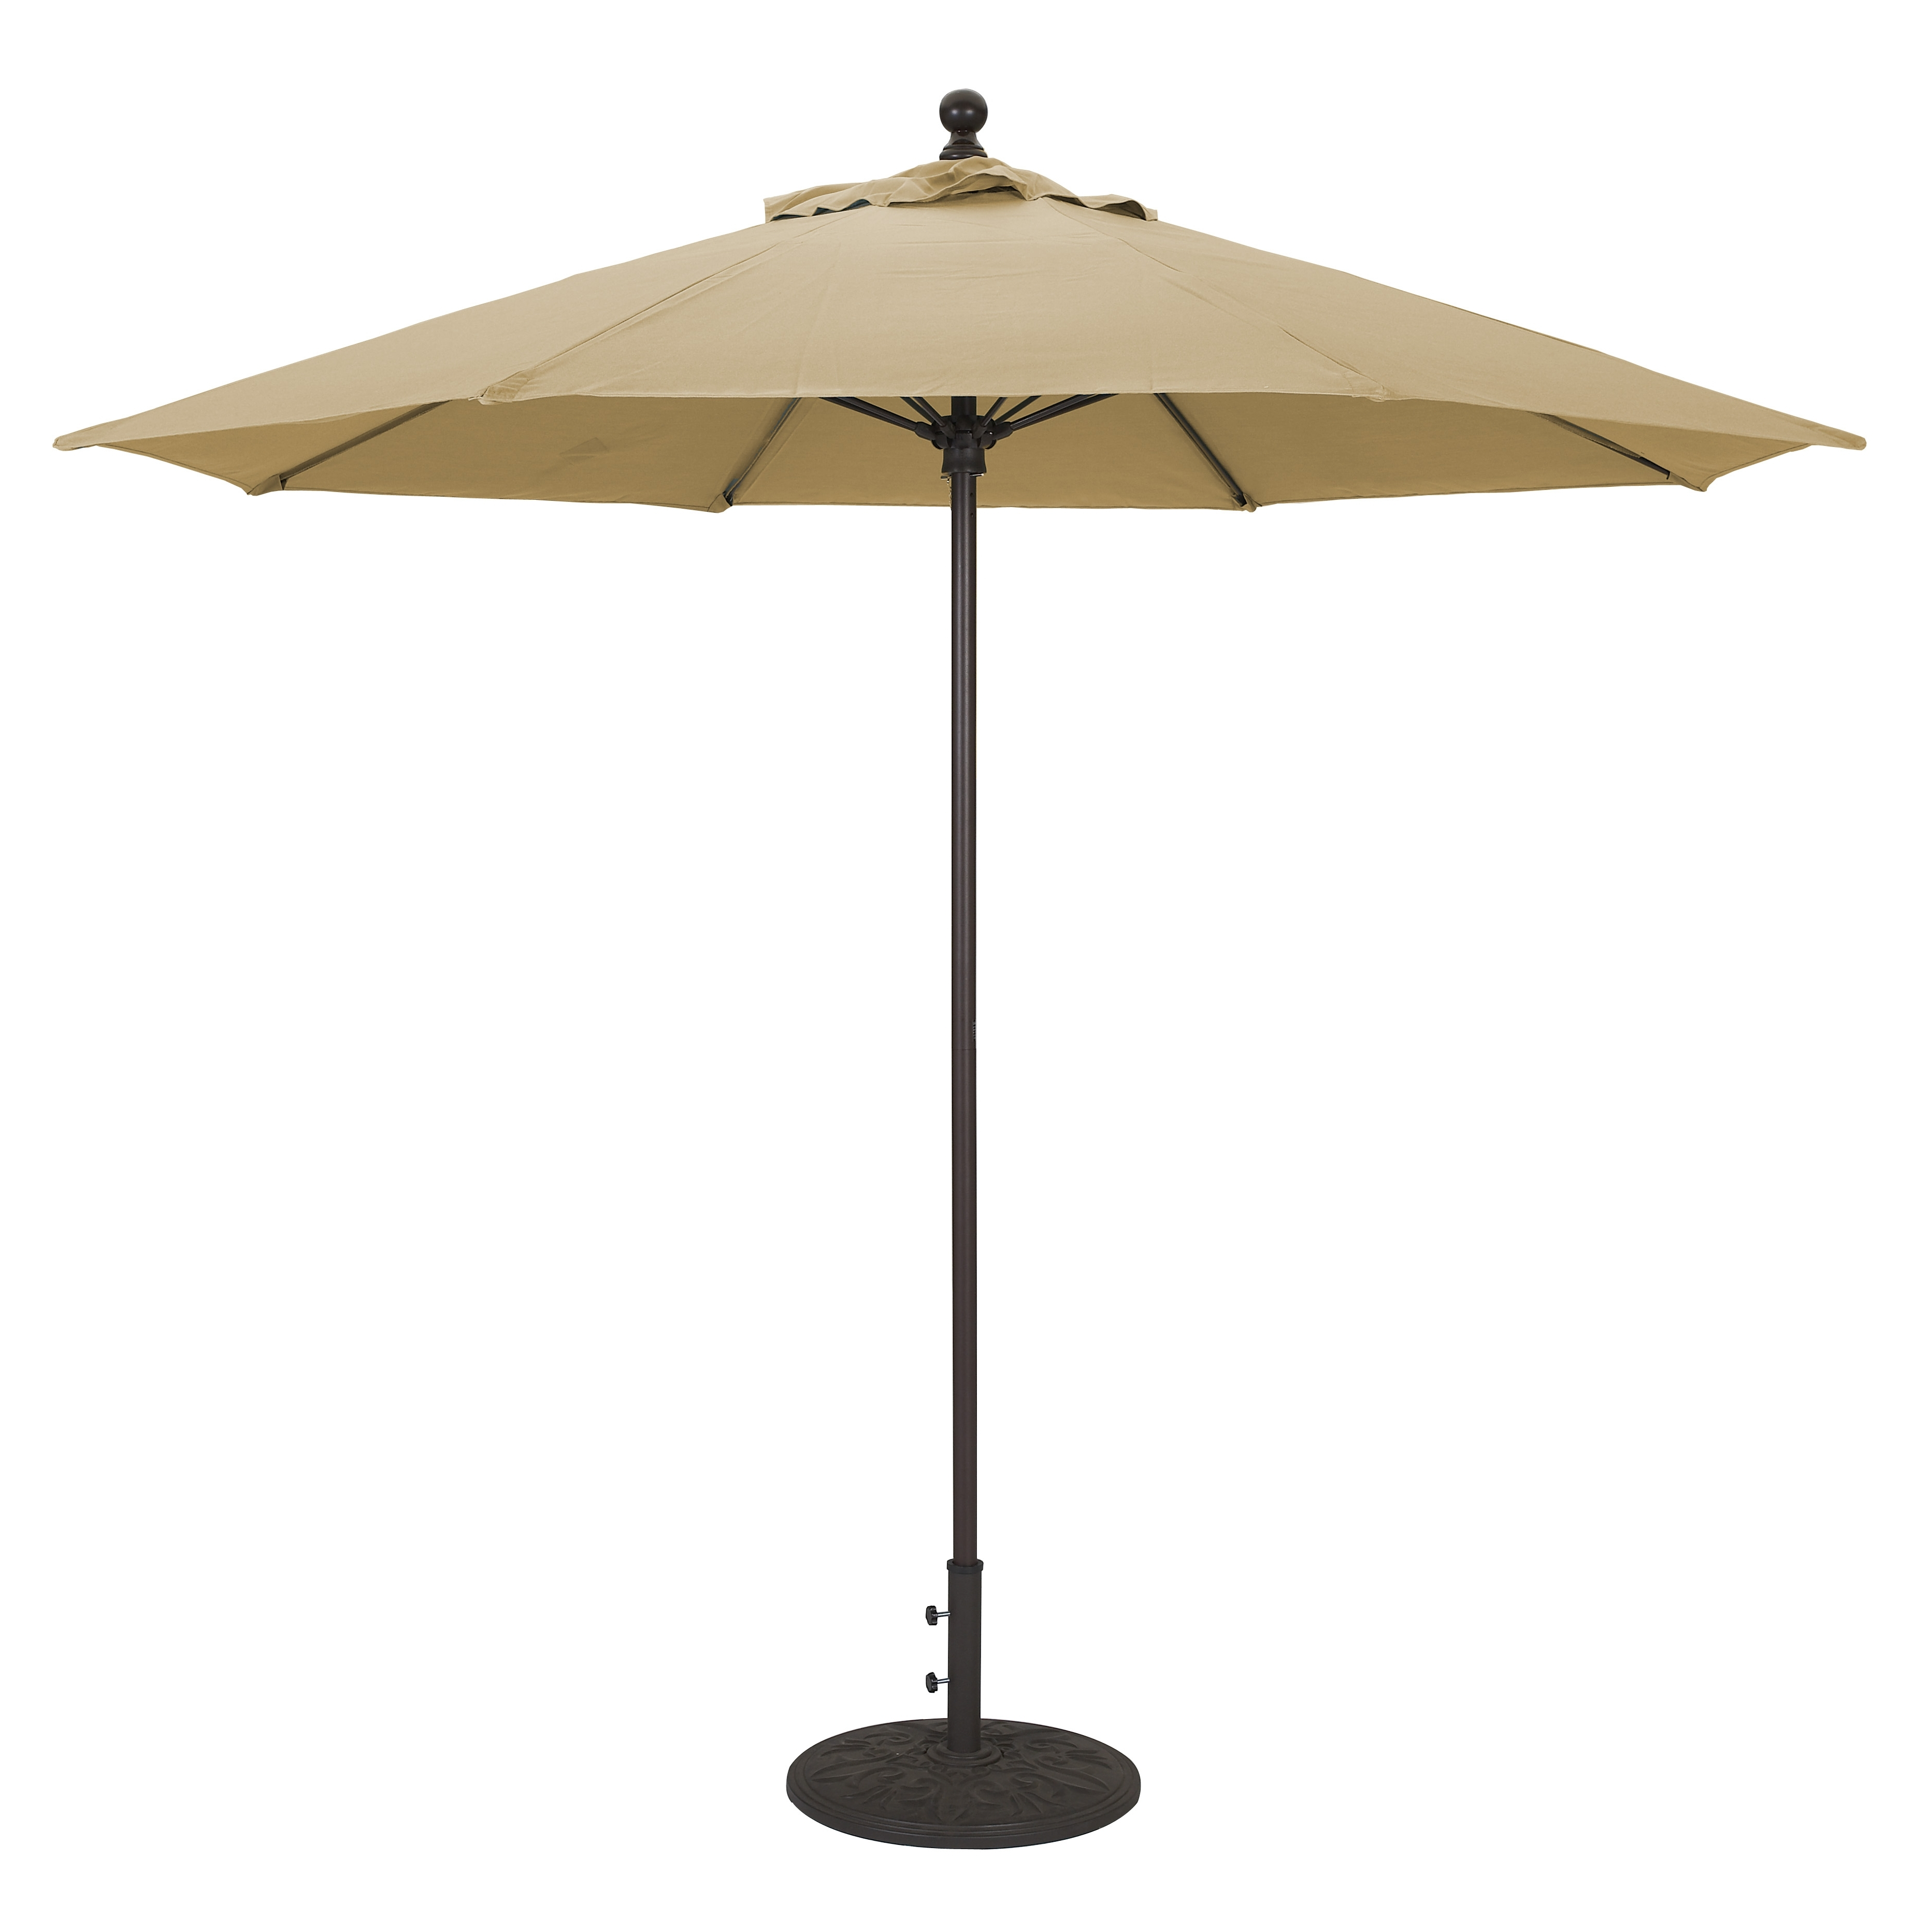 Best And Newest Sunbrella Umbrellas For Sunbrella Teak Umbrellas (Gallery 11 of 20)